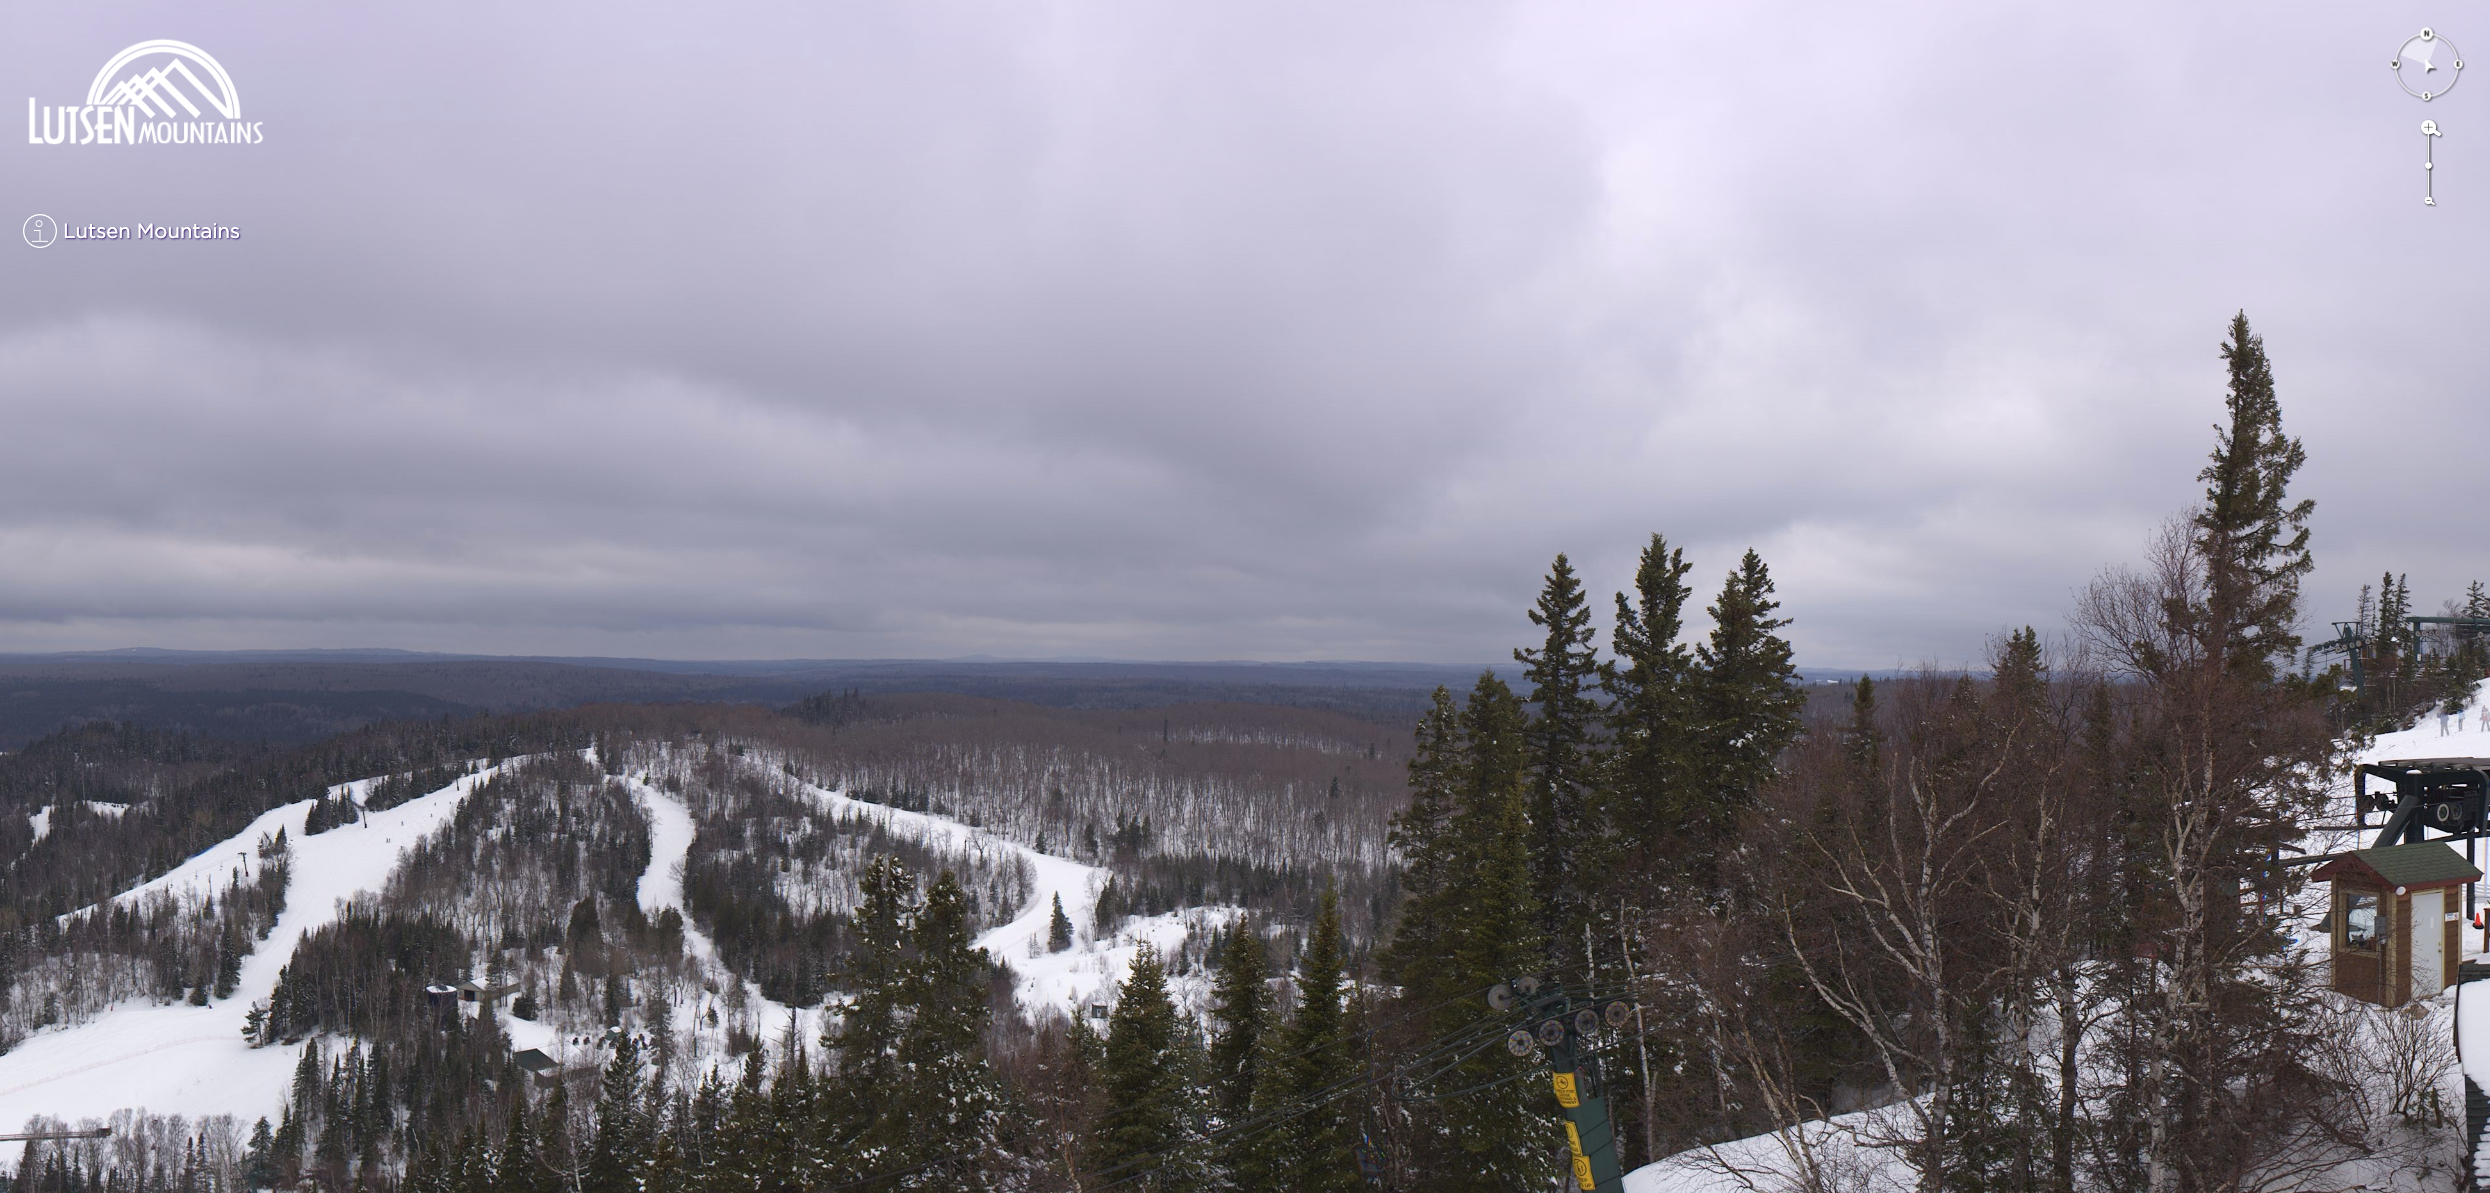 LIVE CAM VIEW OF LUTSEN MOUNTAINS